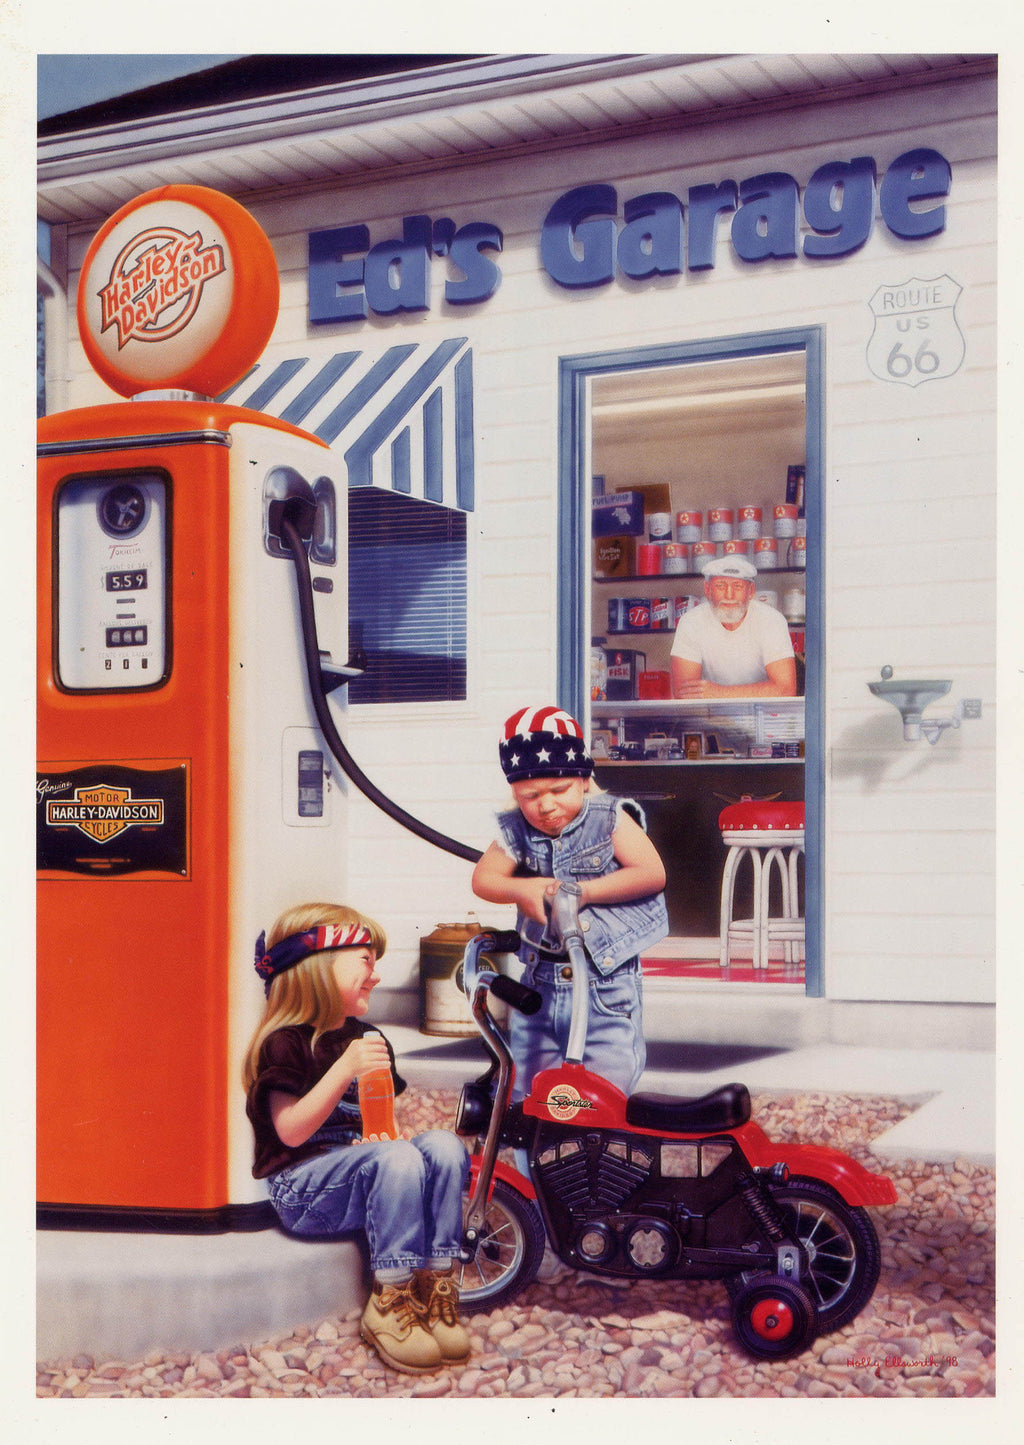 Fill 'er Up Harley Davidson Art Print - Cheeryos Jewelry